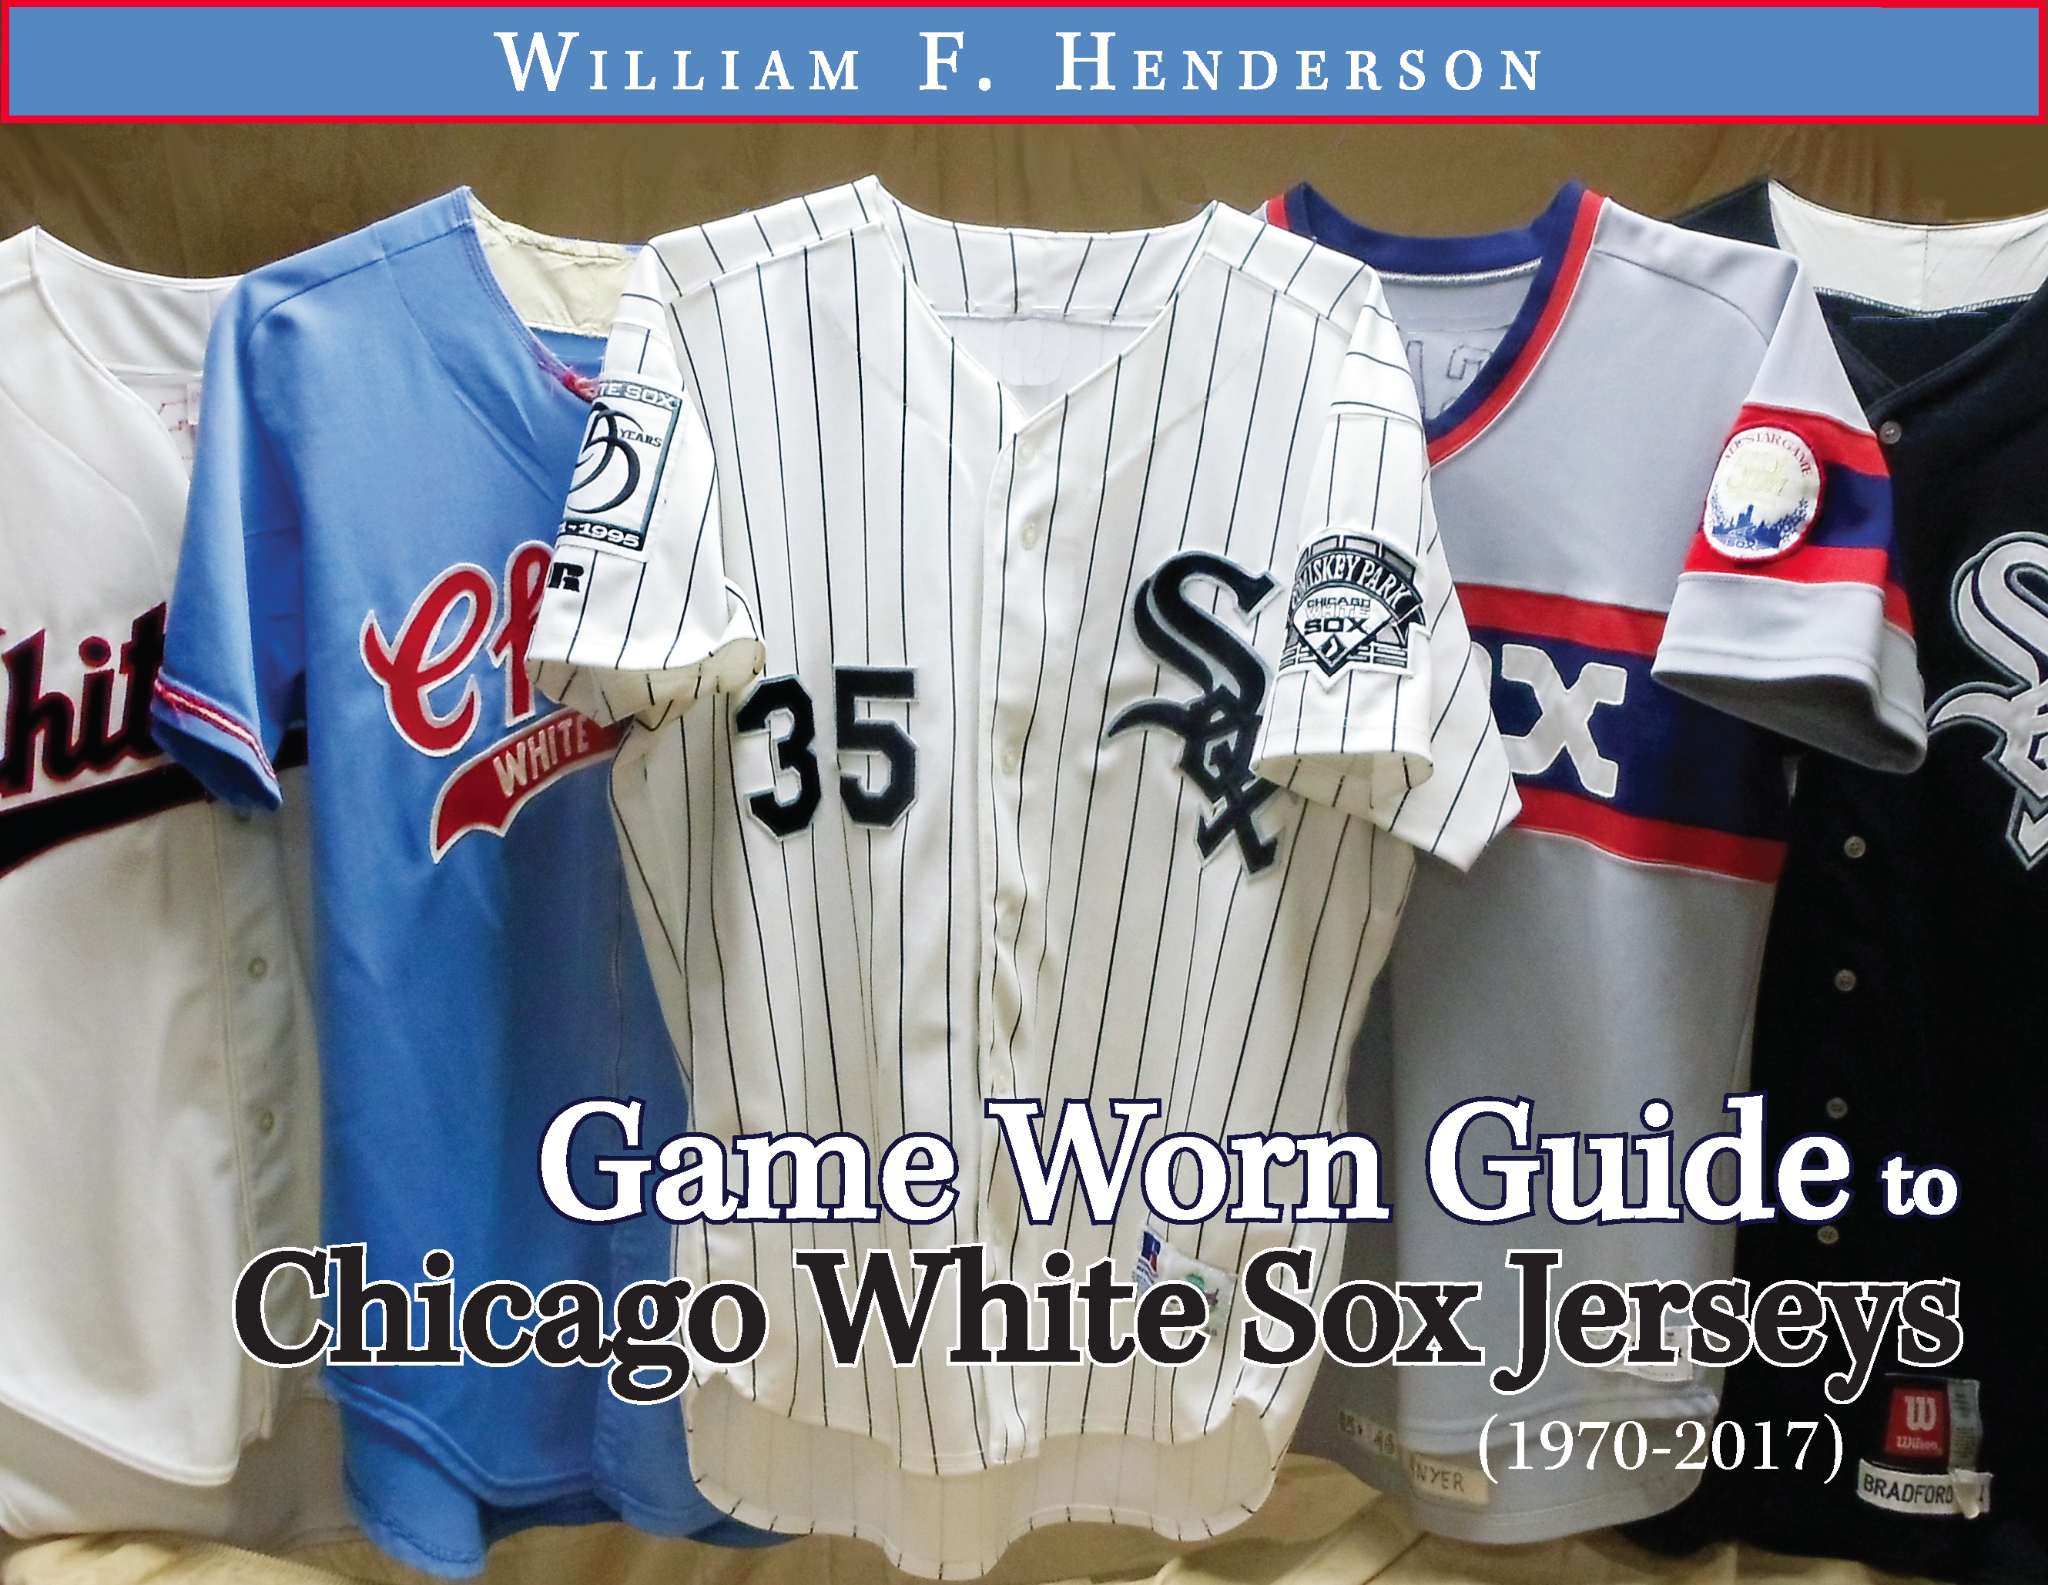 Game Worn Guide to Chicago White Sox Jerseys (1970-2017)